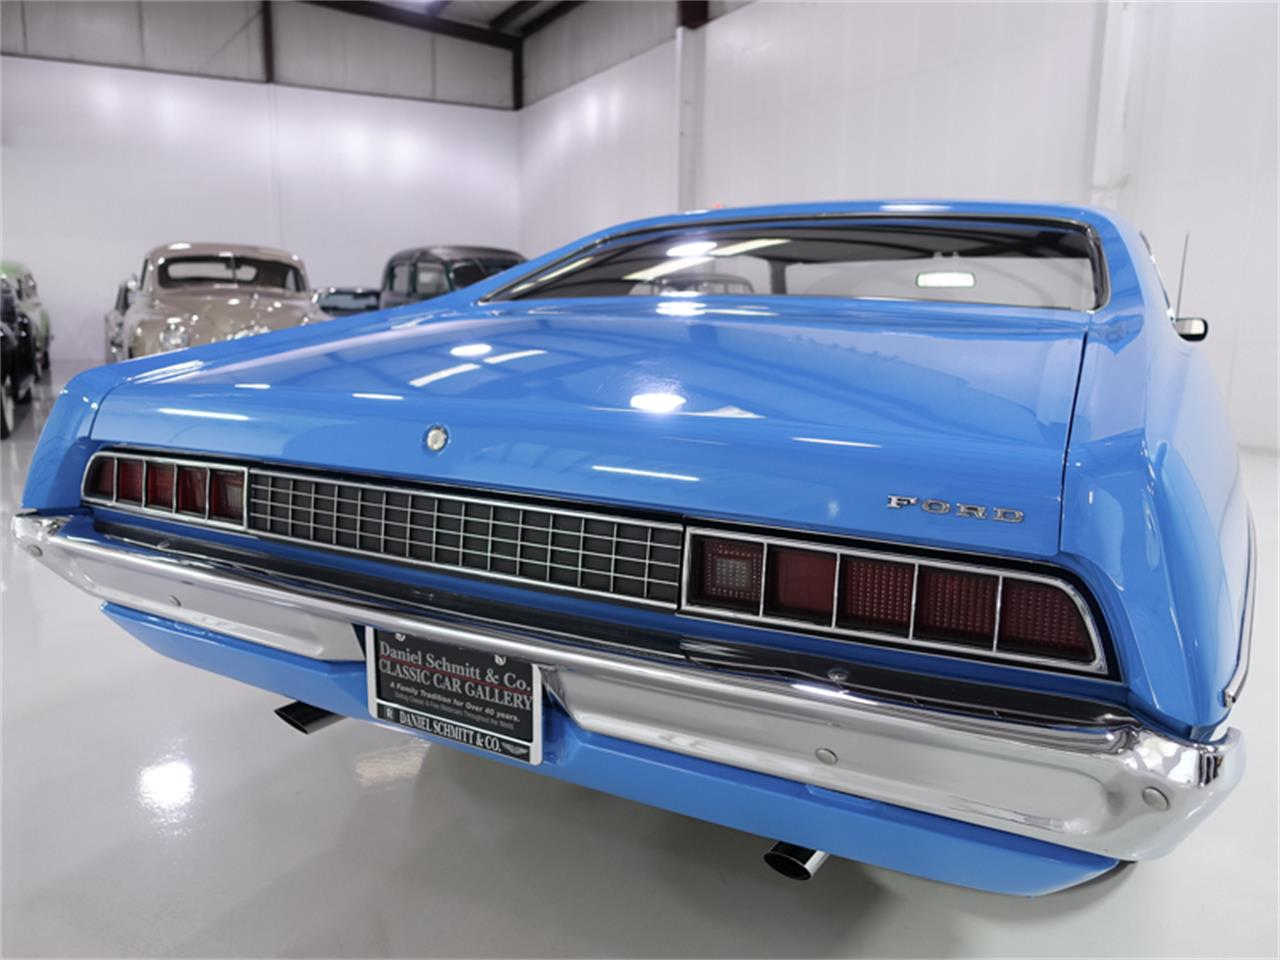 Large Picture of 1970 Ford Torino located in Missouri - $59,900.00 Offered by Daniel Schmitt & Co. - MSON